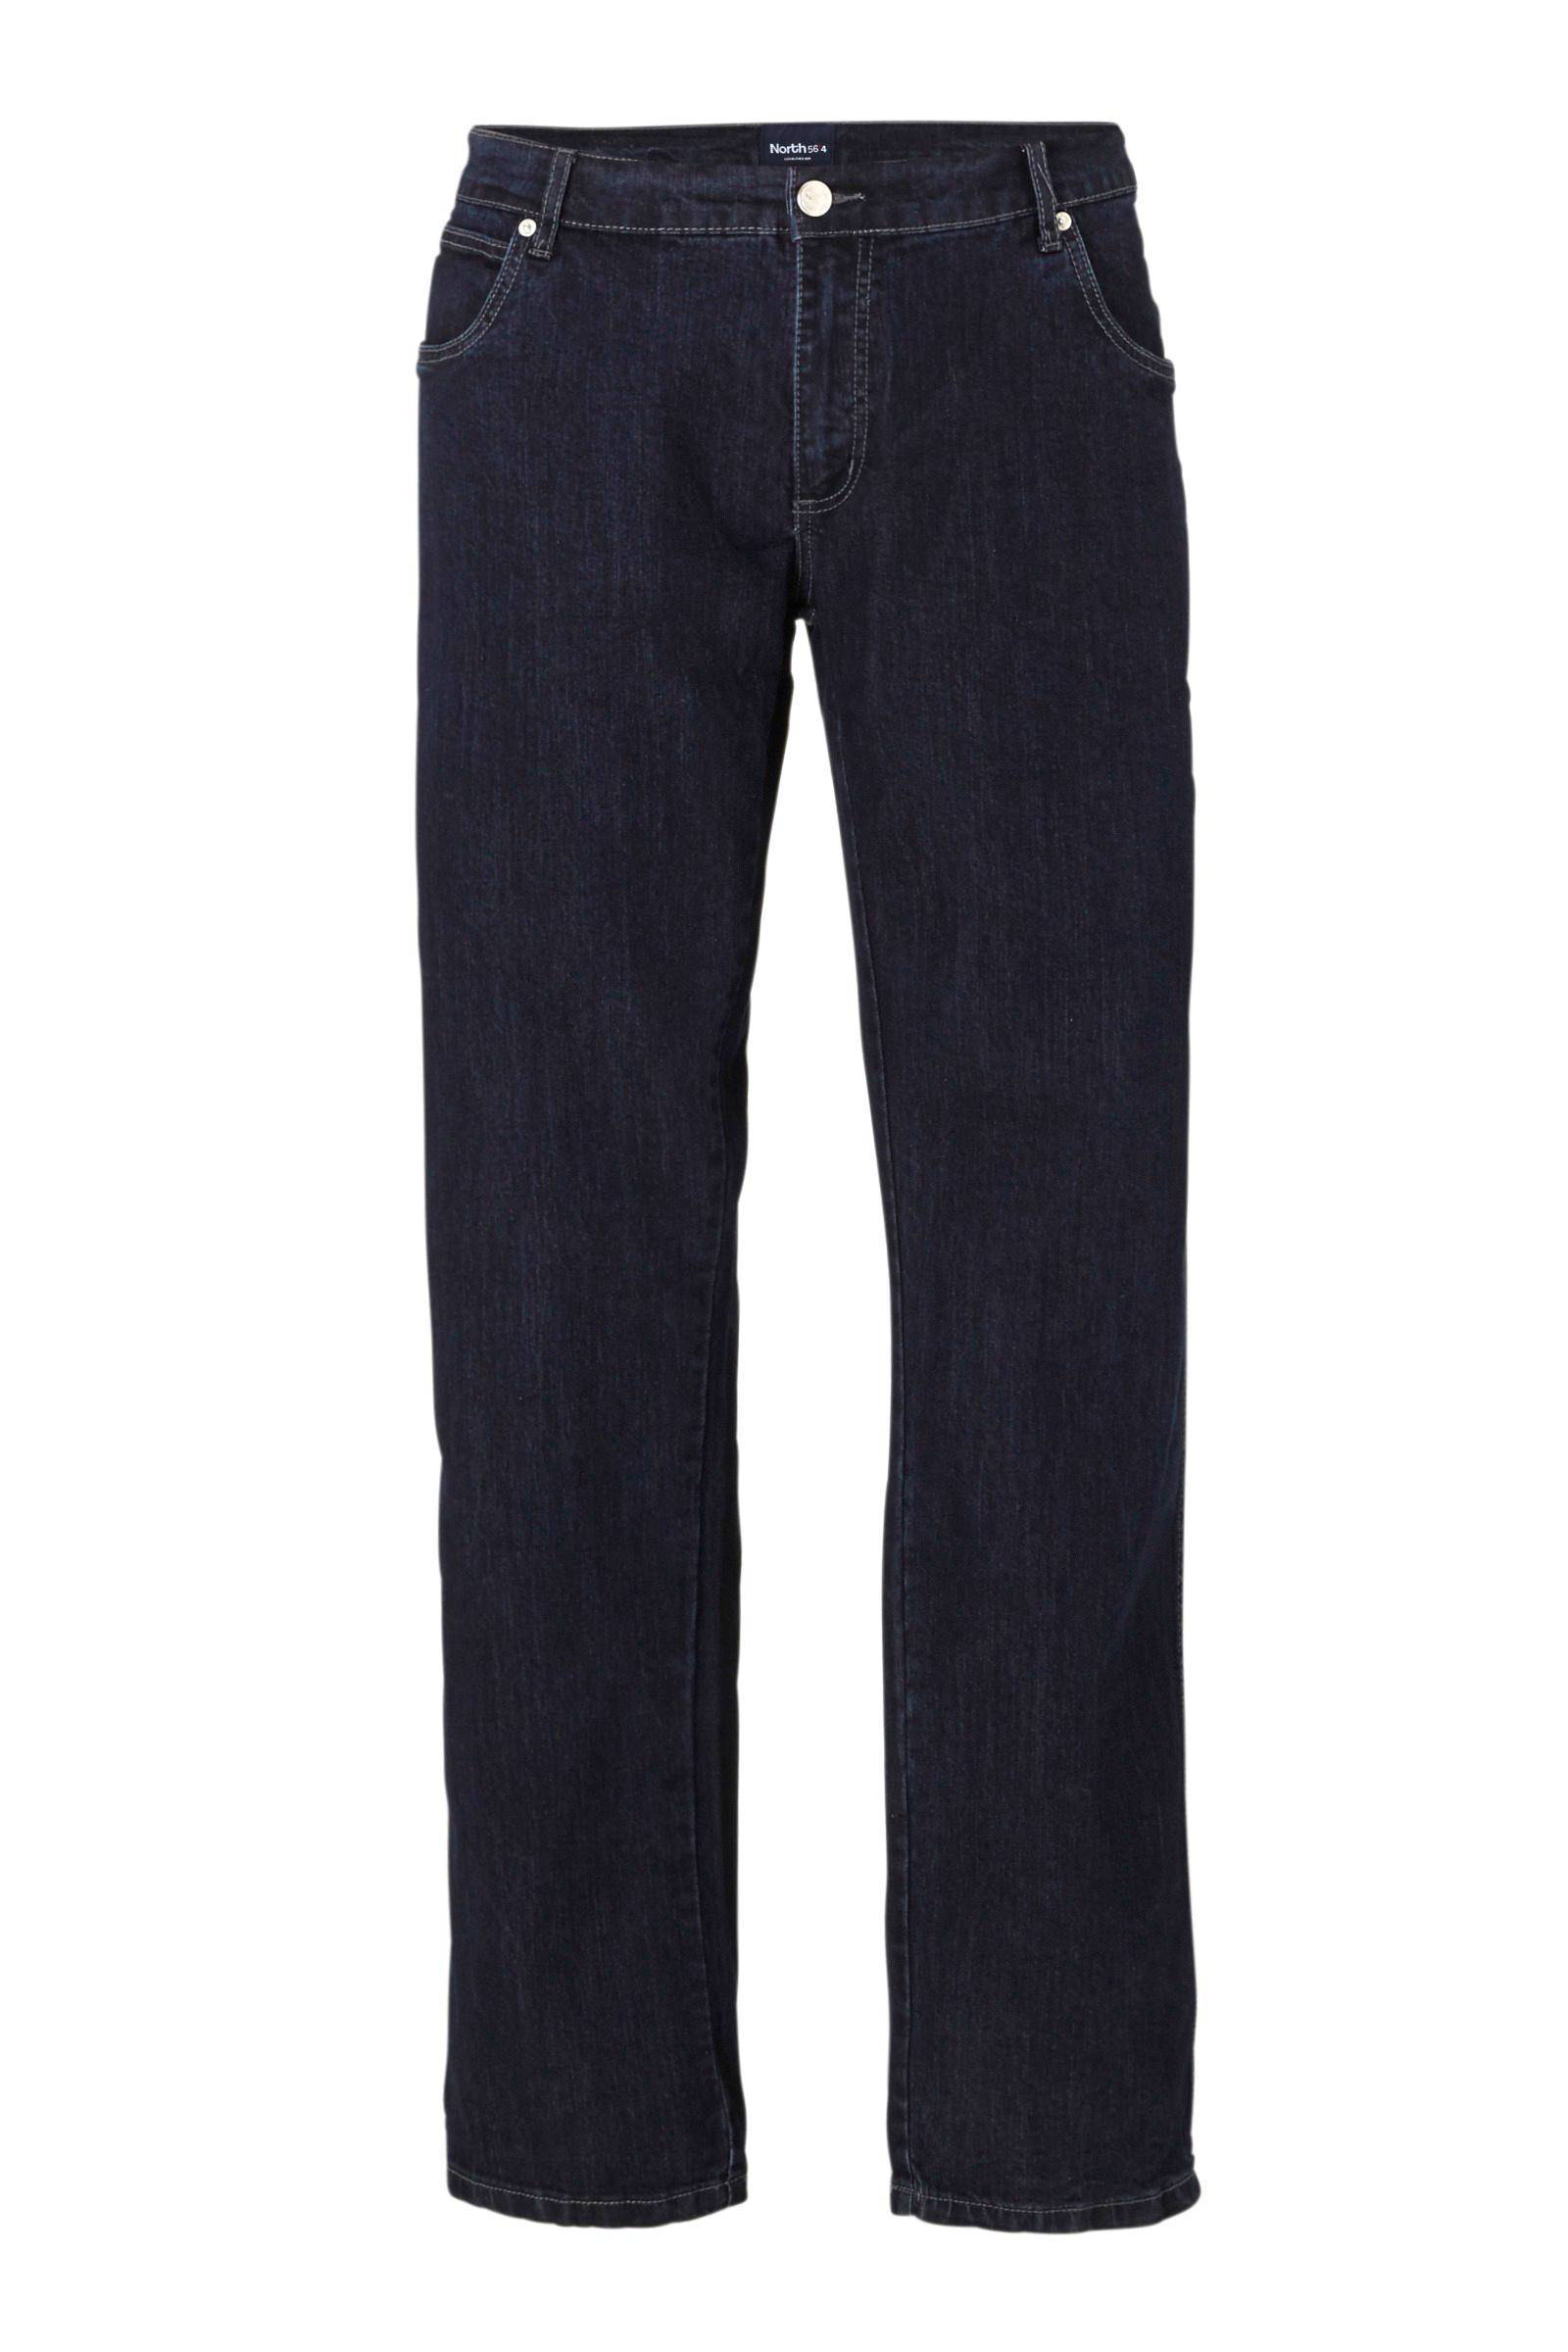 North 56°4 +size jeans (heren)